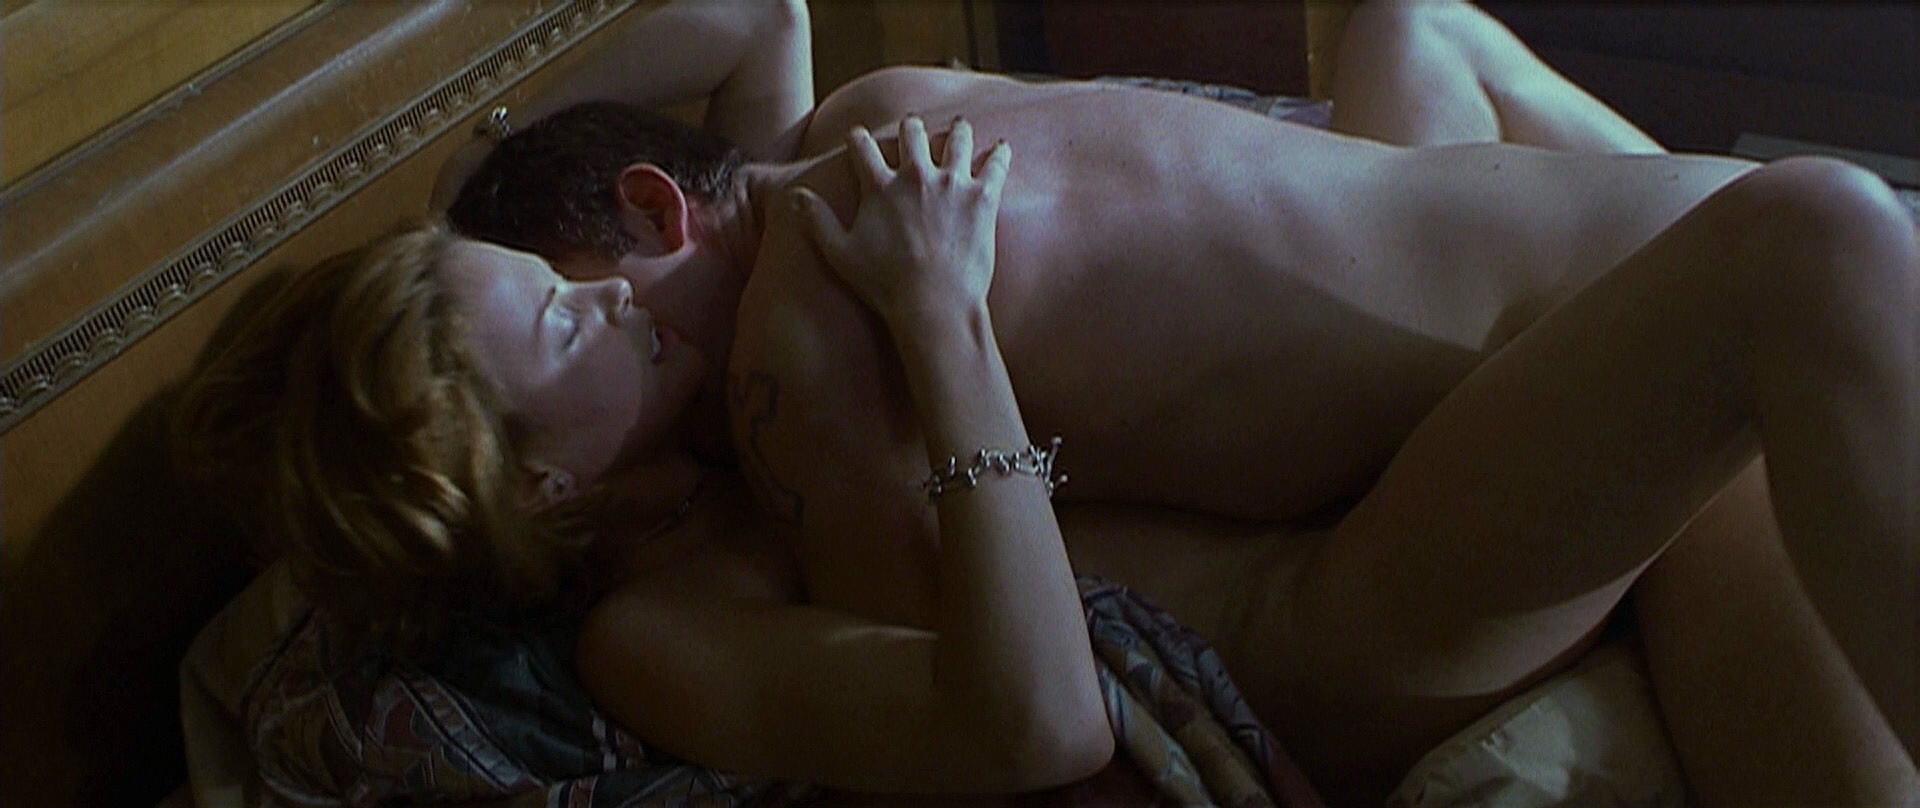 nude charlize theron sex